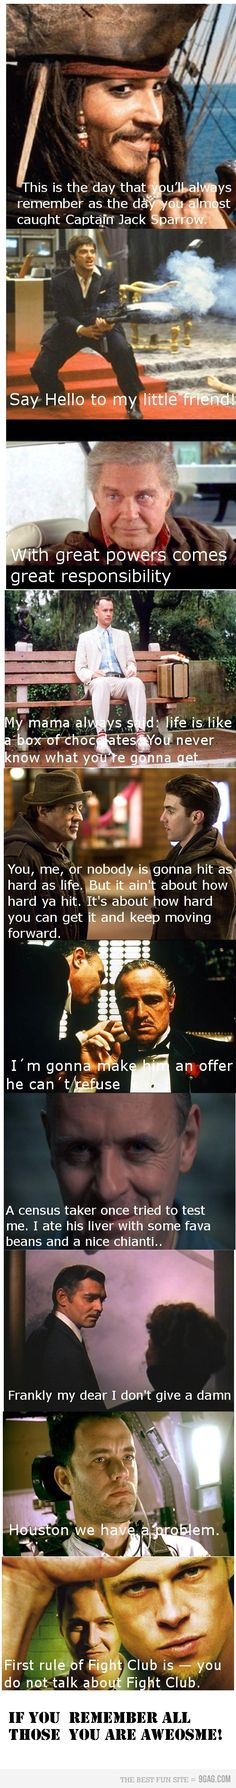 Great movie quotes. Only knew a few of these, but they're still awesome!